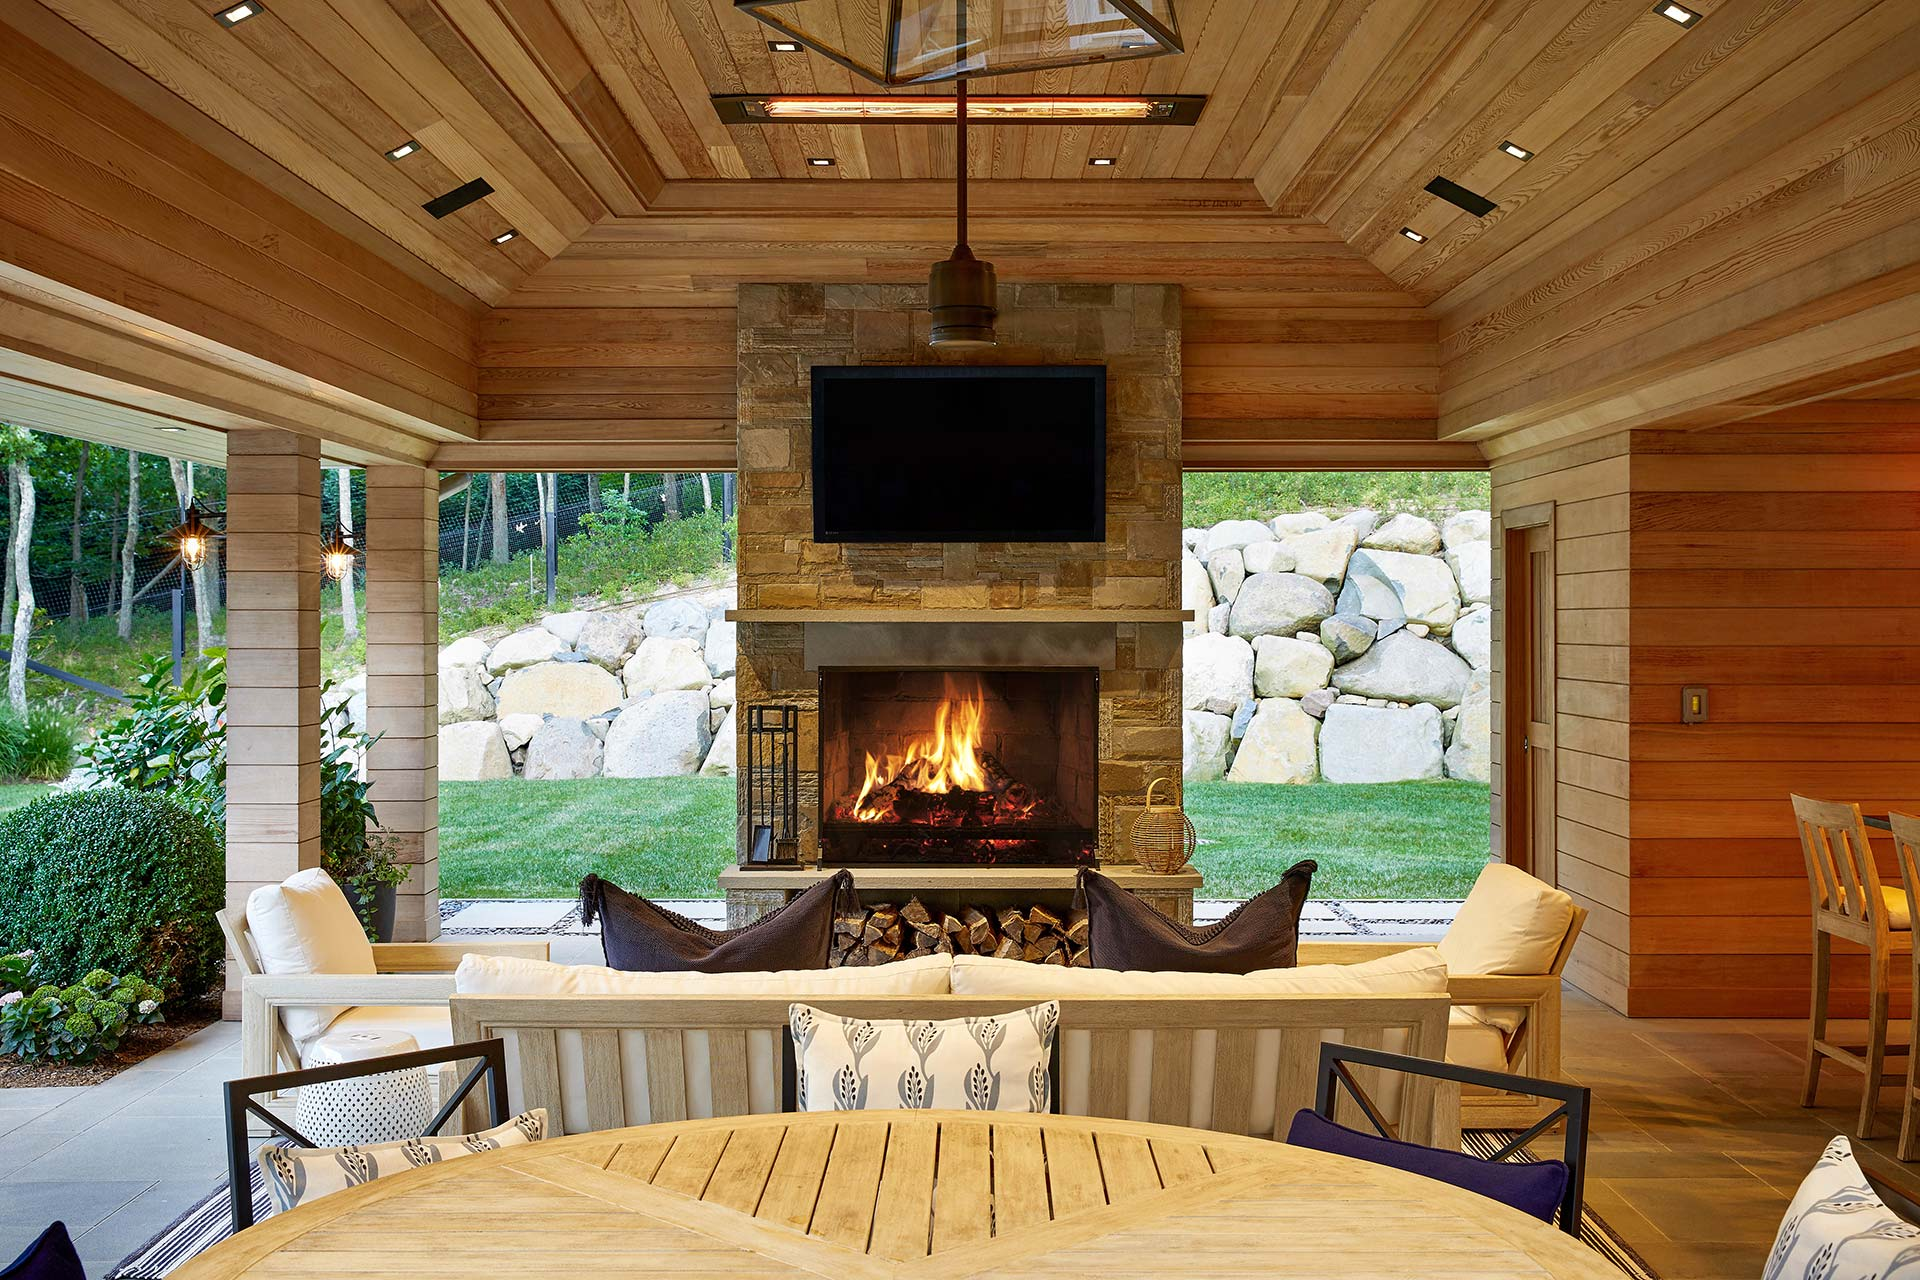 Outdoor fireplaces, both gas and woodburning, lend ambiance and warmth to a cool summer evening.